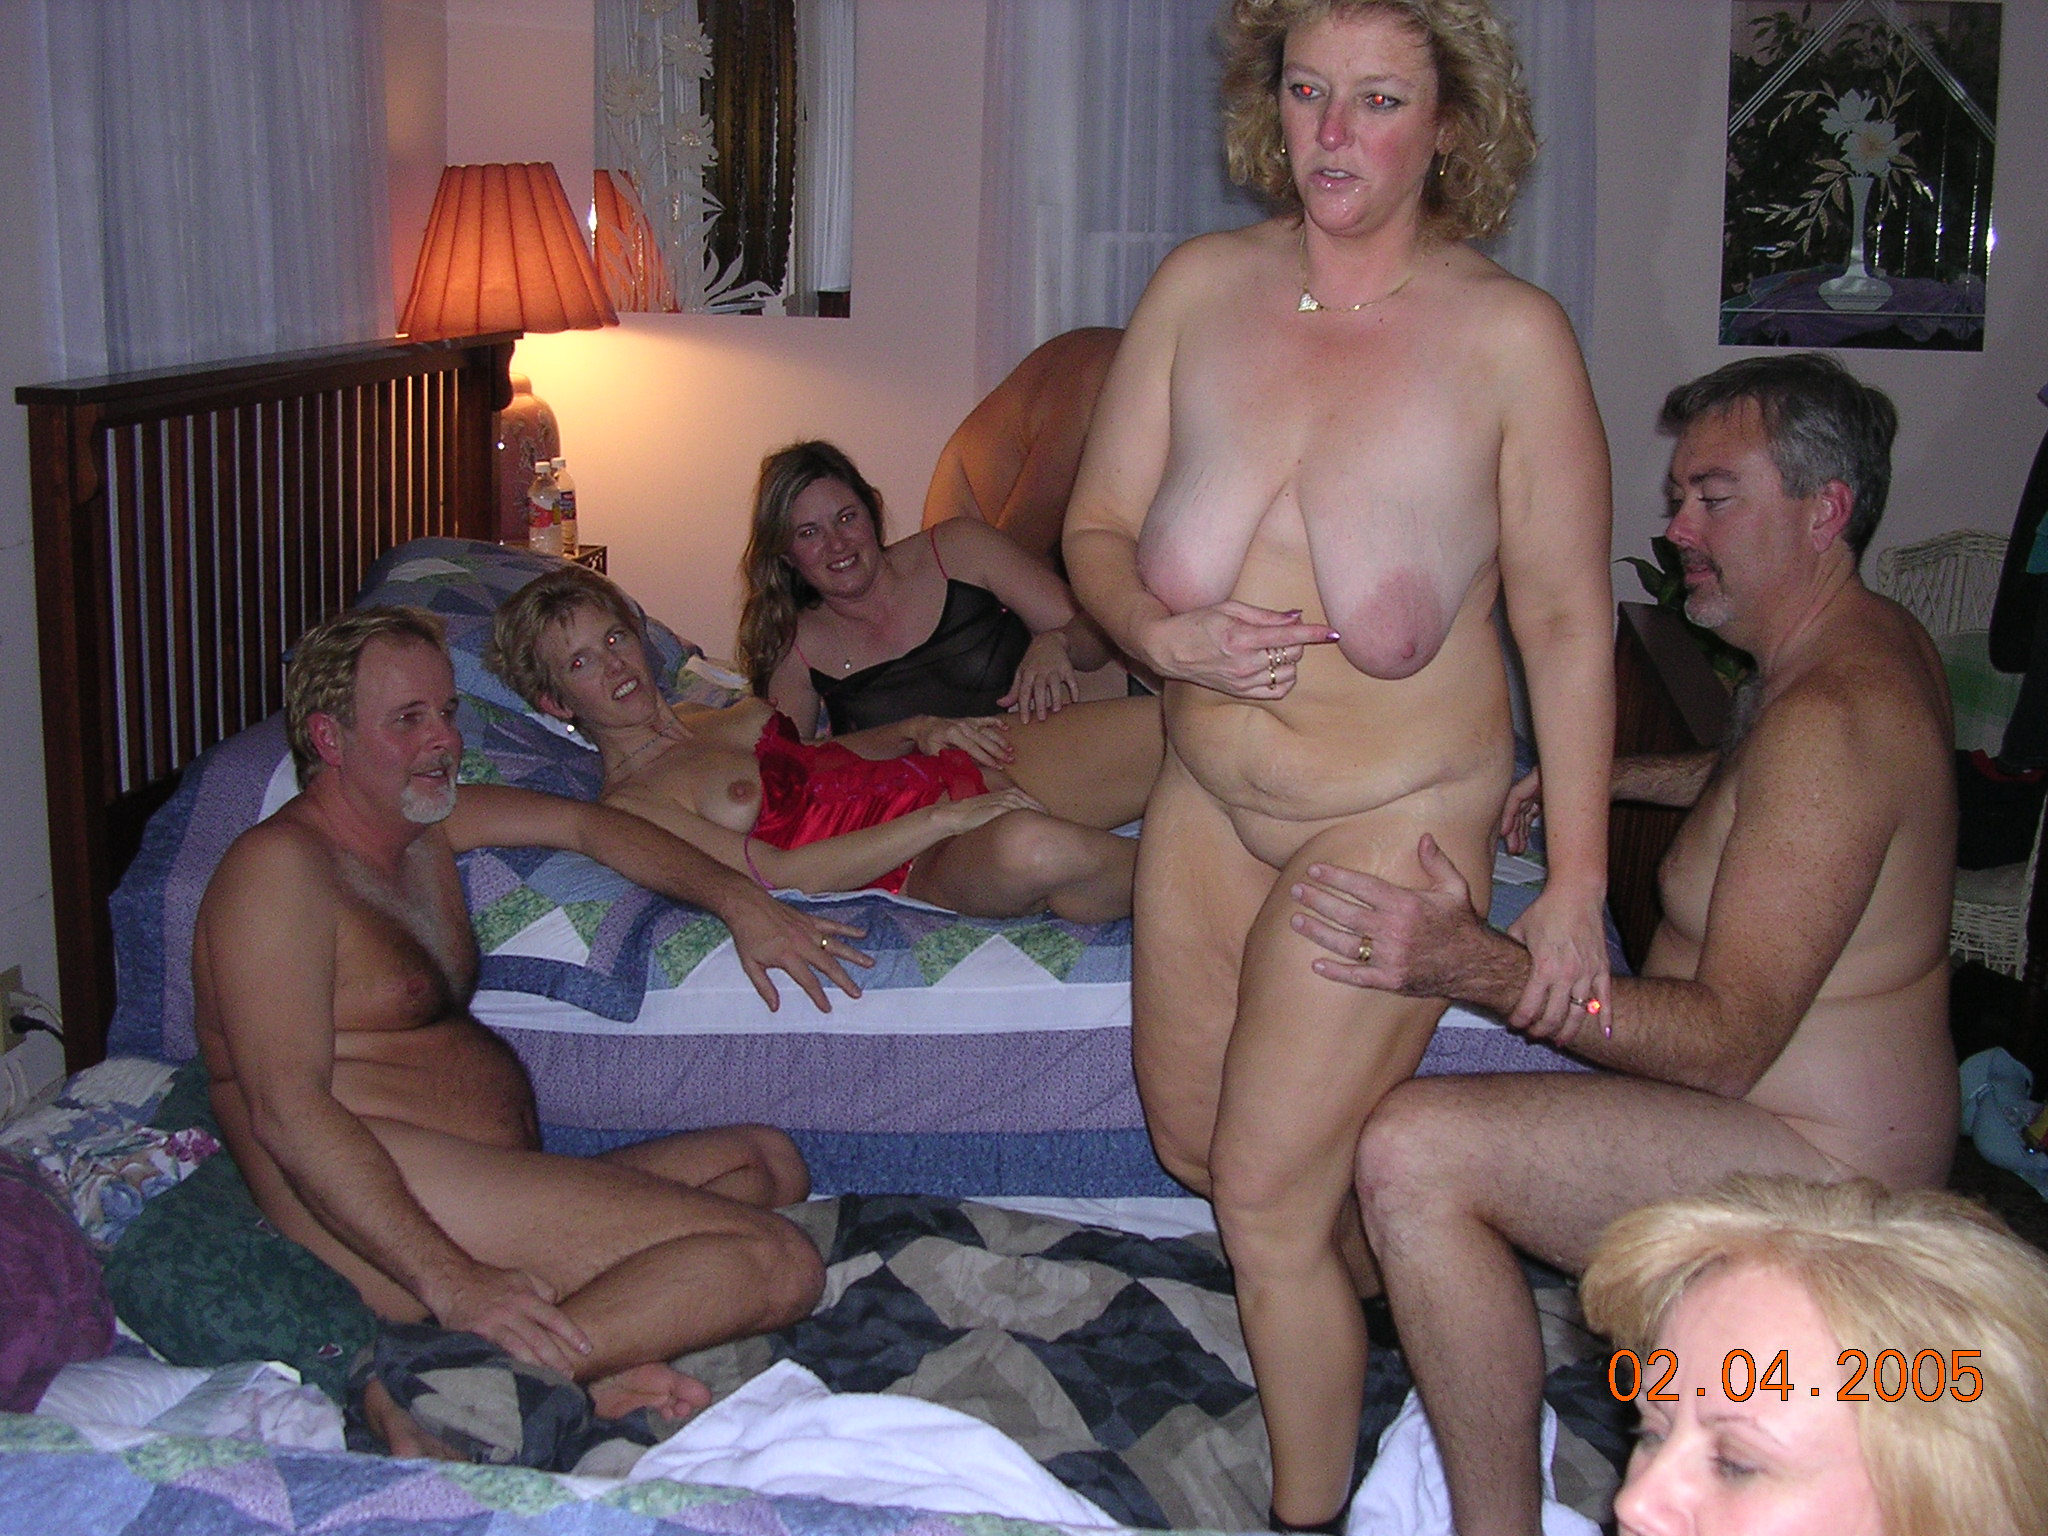 apologise, but, amateur milf swallows pov right! like this